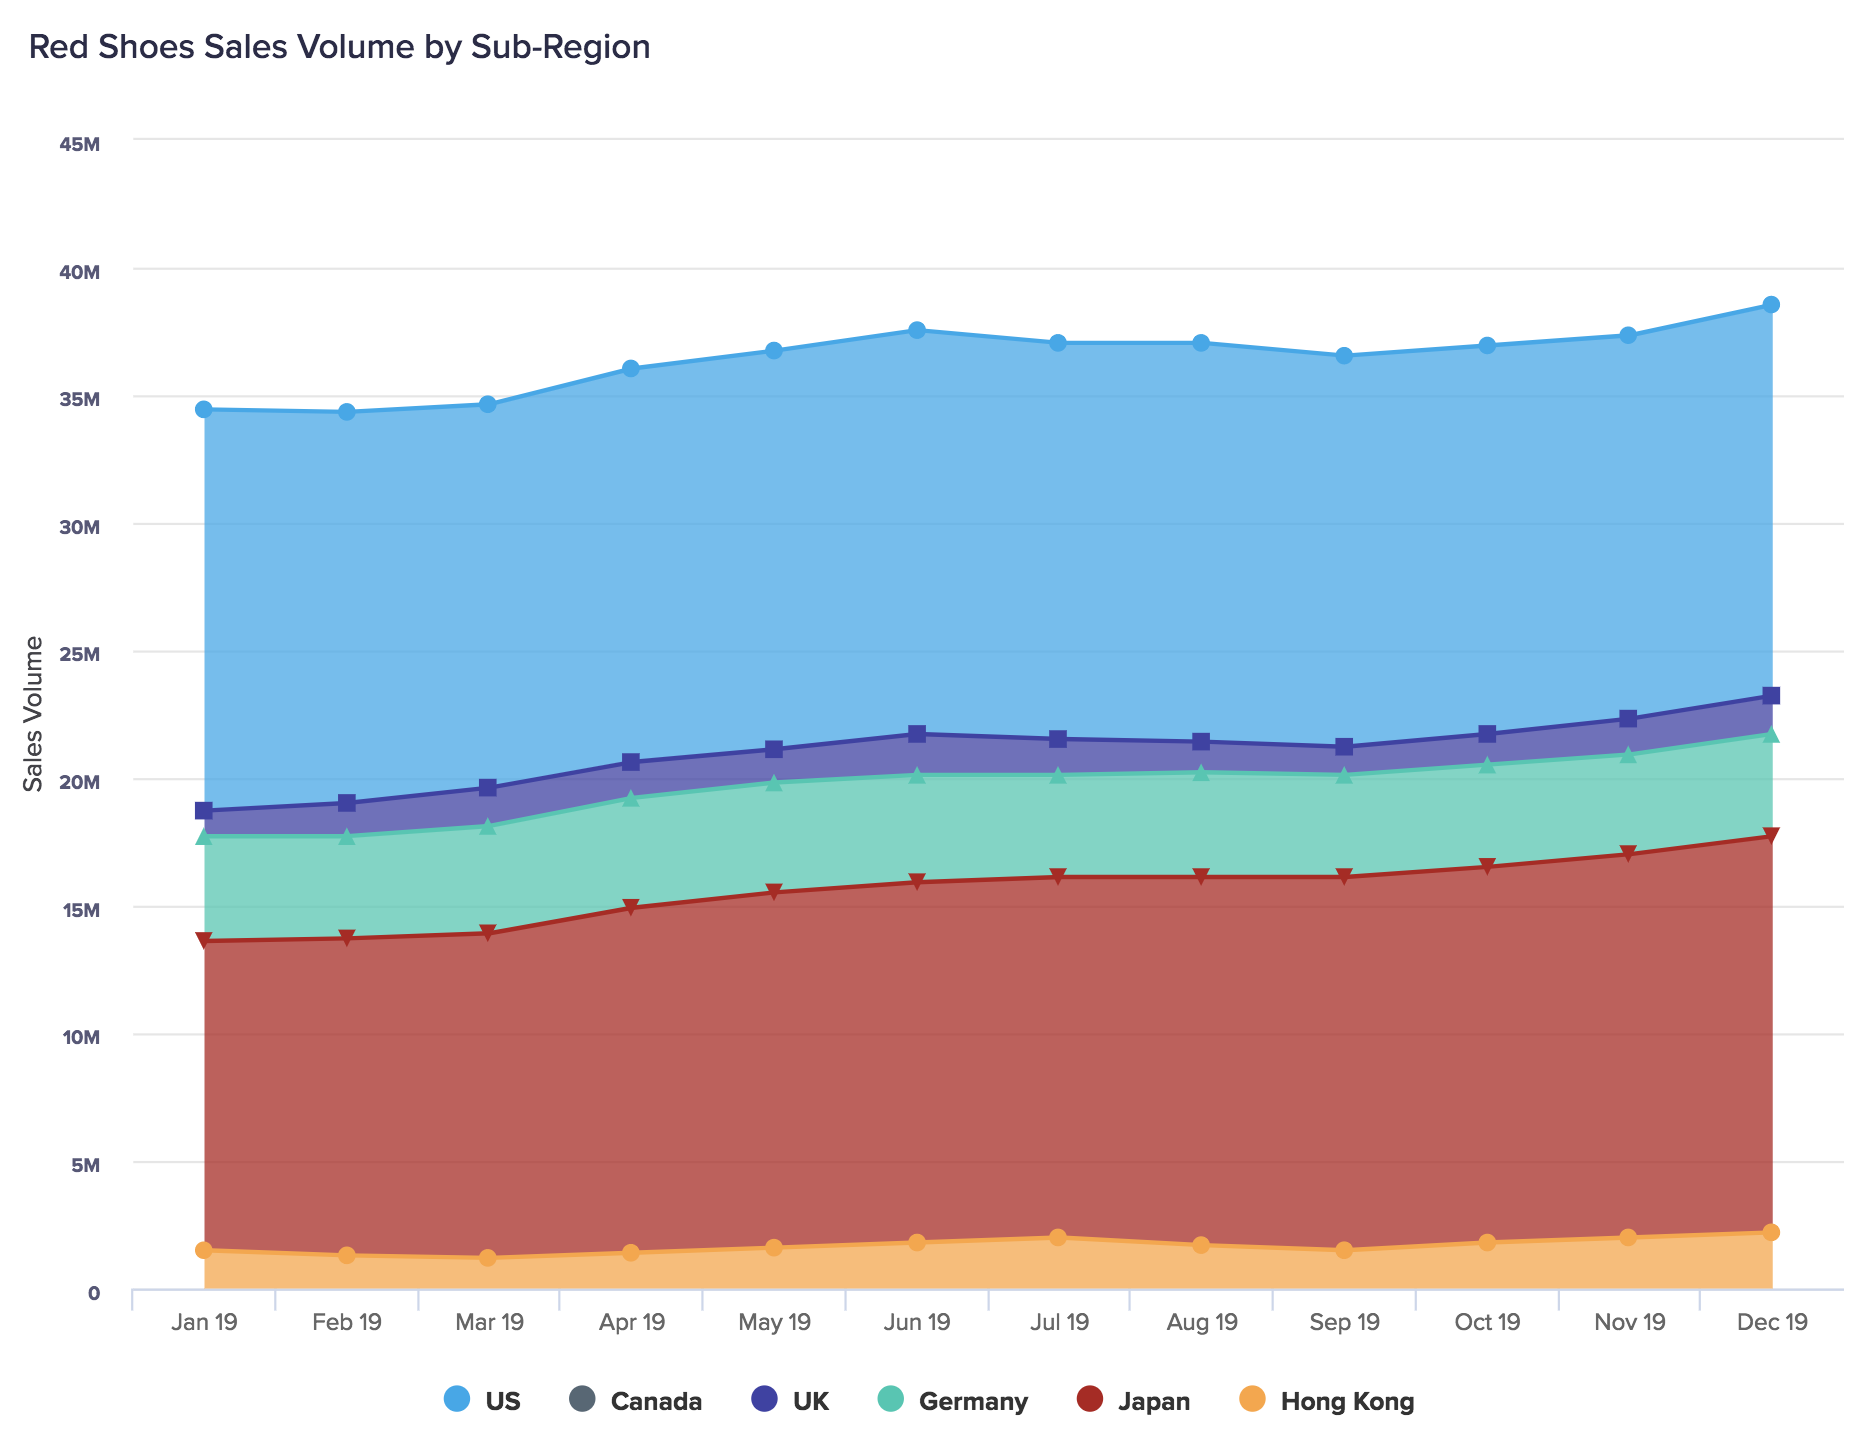 Stacked area chart displaying sales volume by sub-region. Generally, sales have increased in all regions over the year with a spike in June and December, although there are minor regional variations.